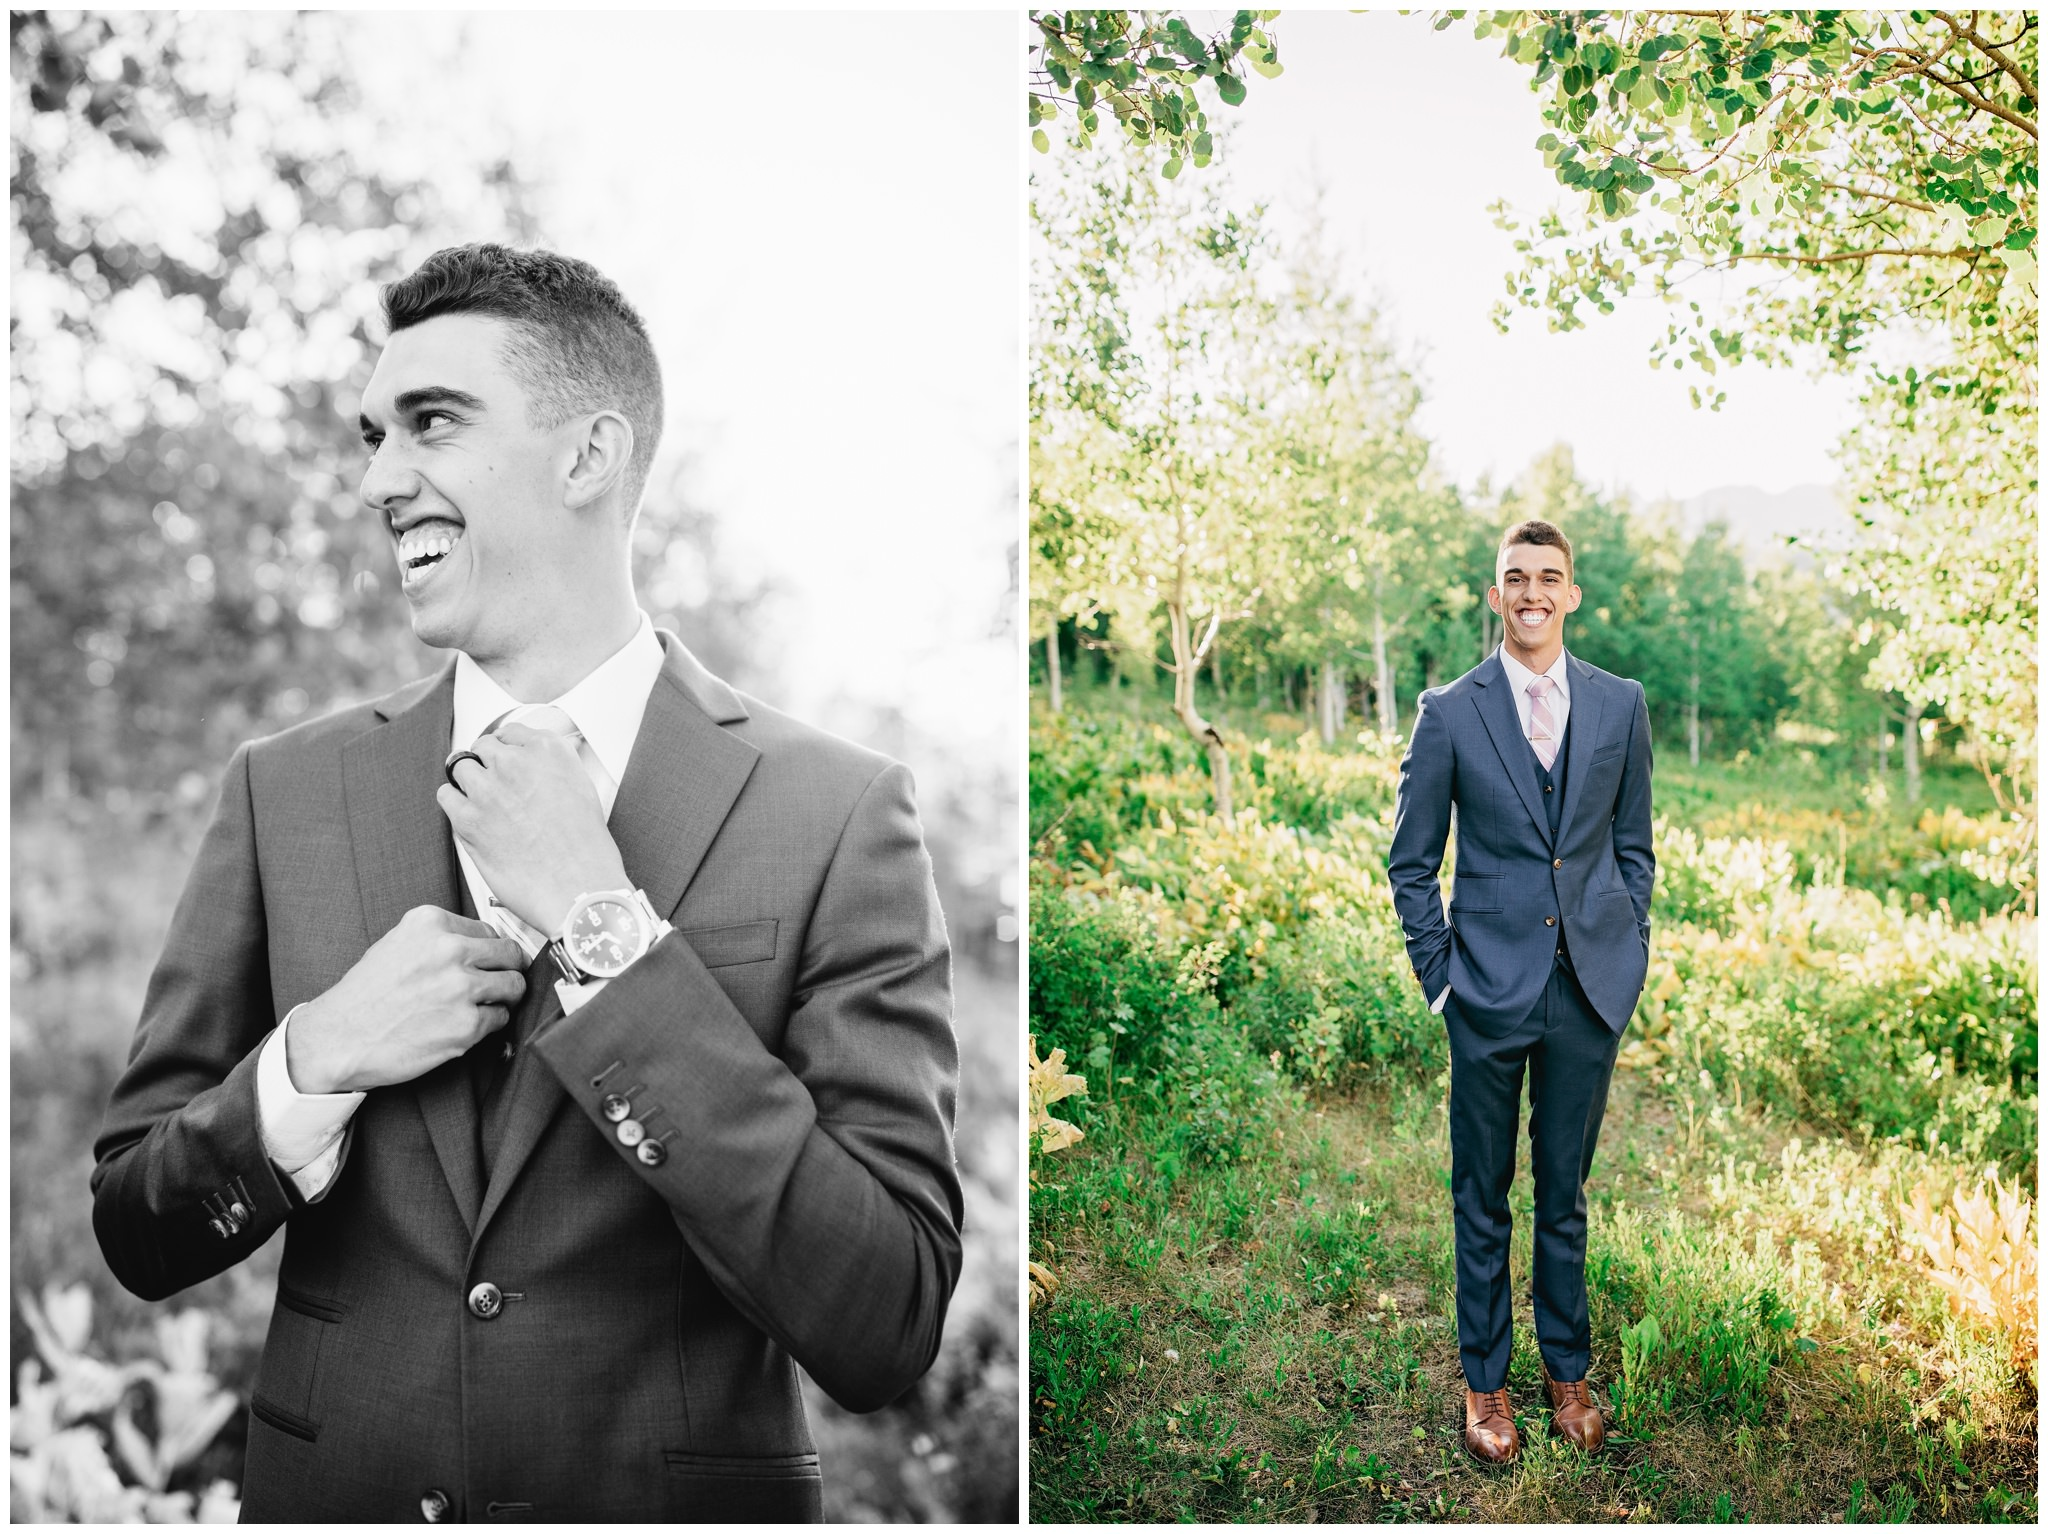 Groom portraits and pictures in the mountains near trees